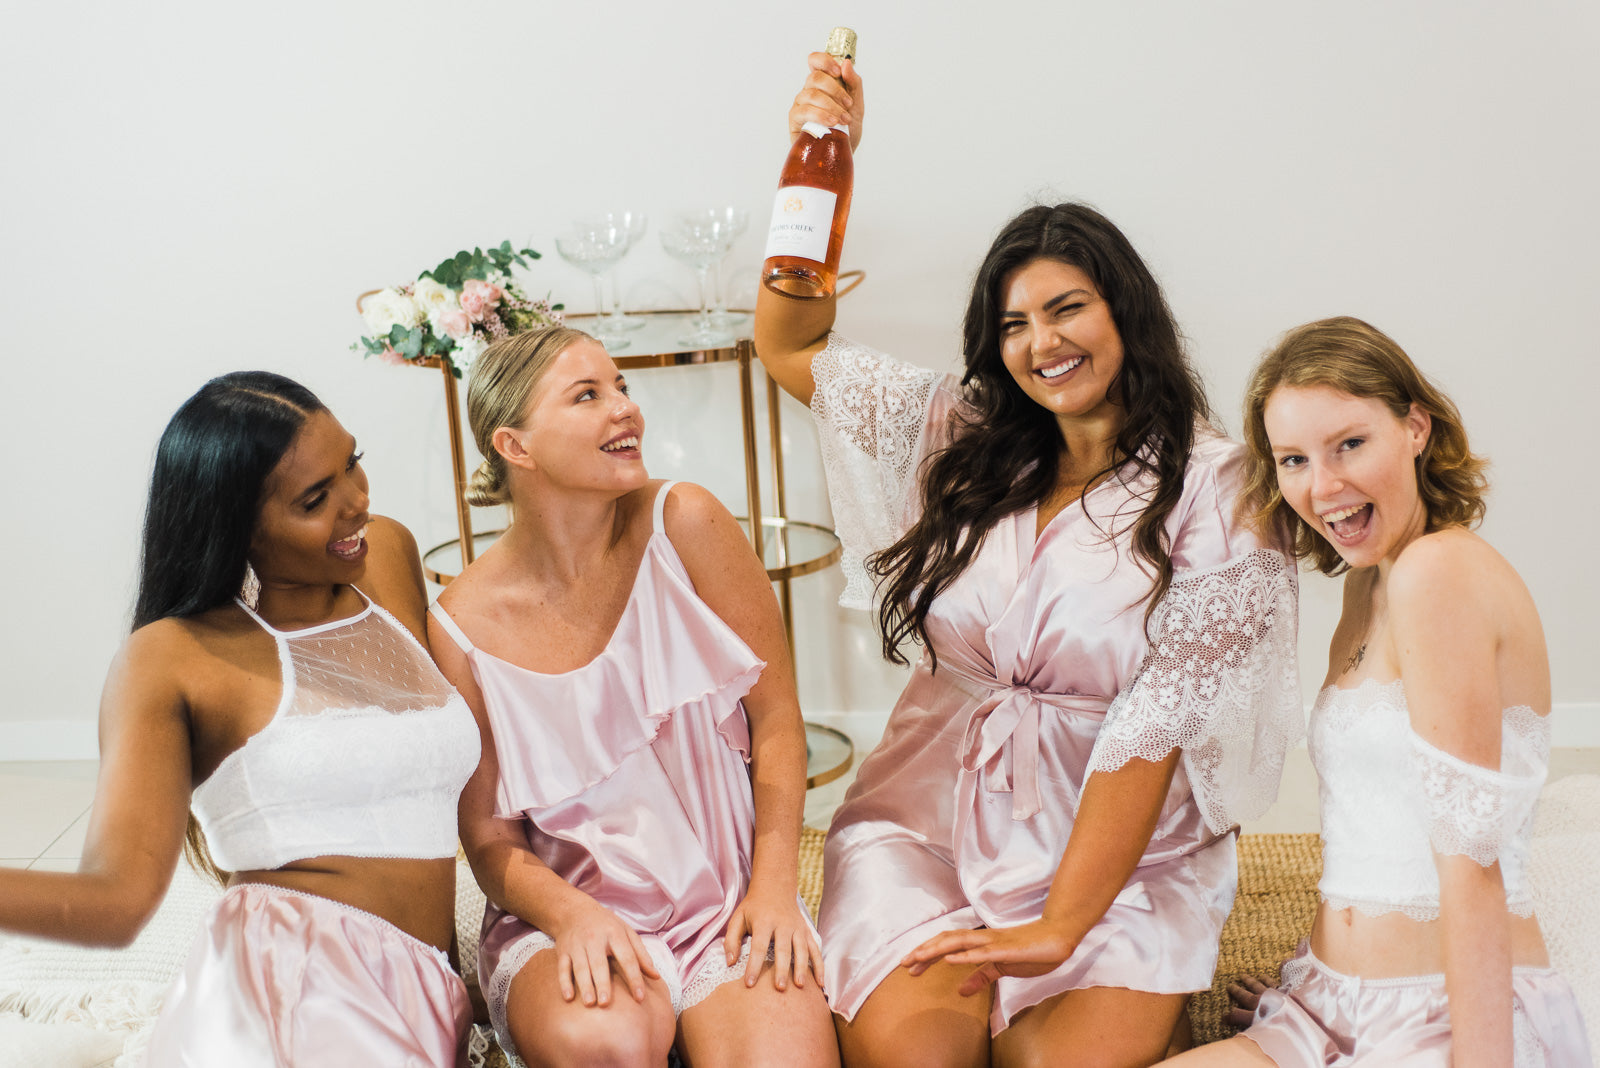 hen party outfits by lazy girl lingerie